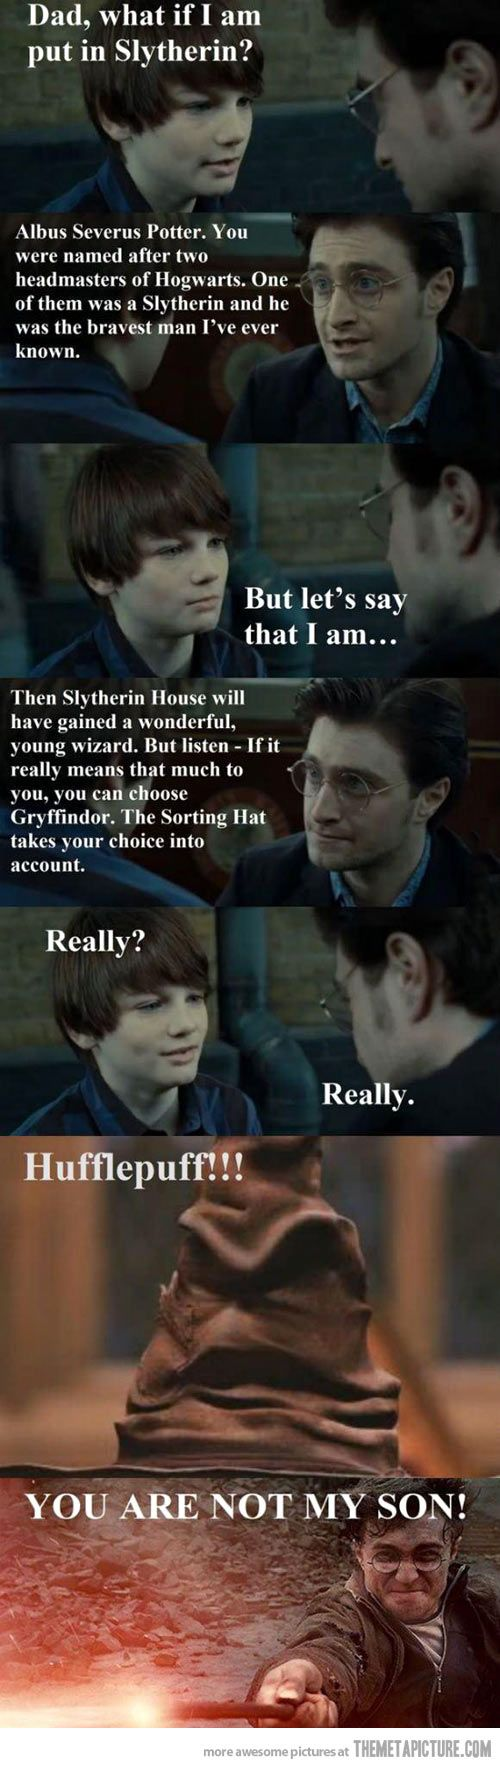 Albus Severus Potter into Hufflepuff... daddy Harry doesn't approve.